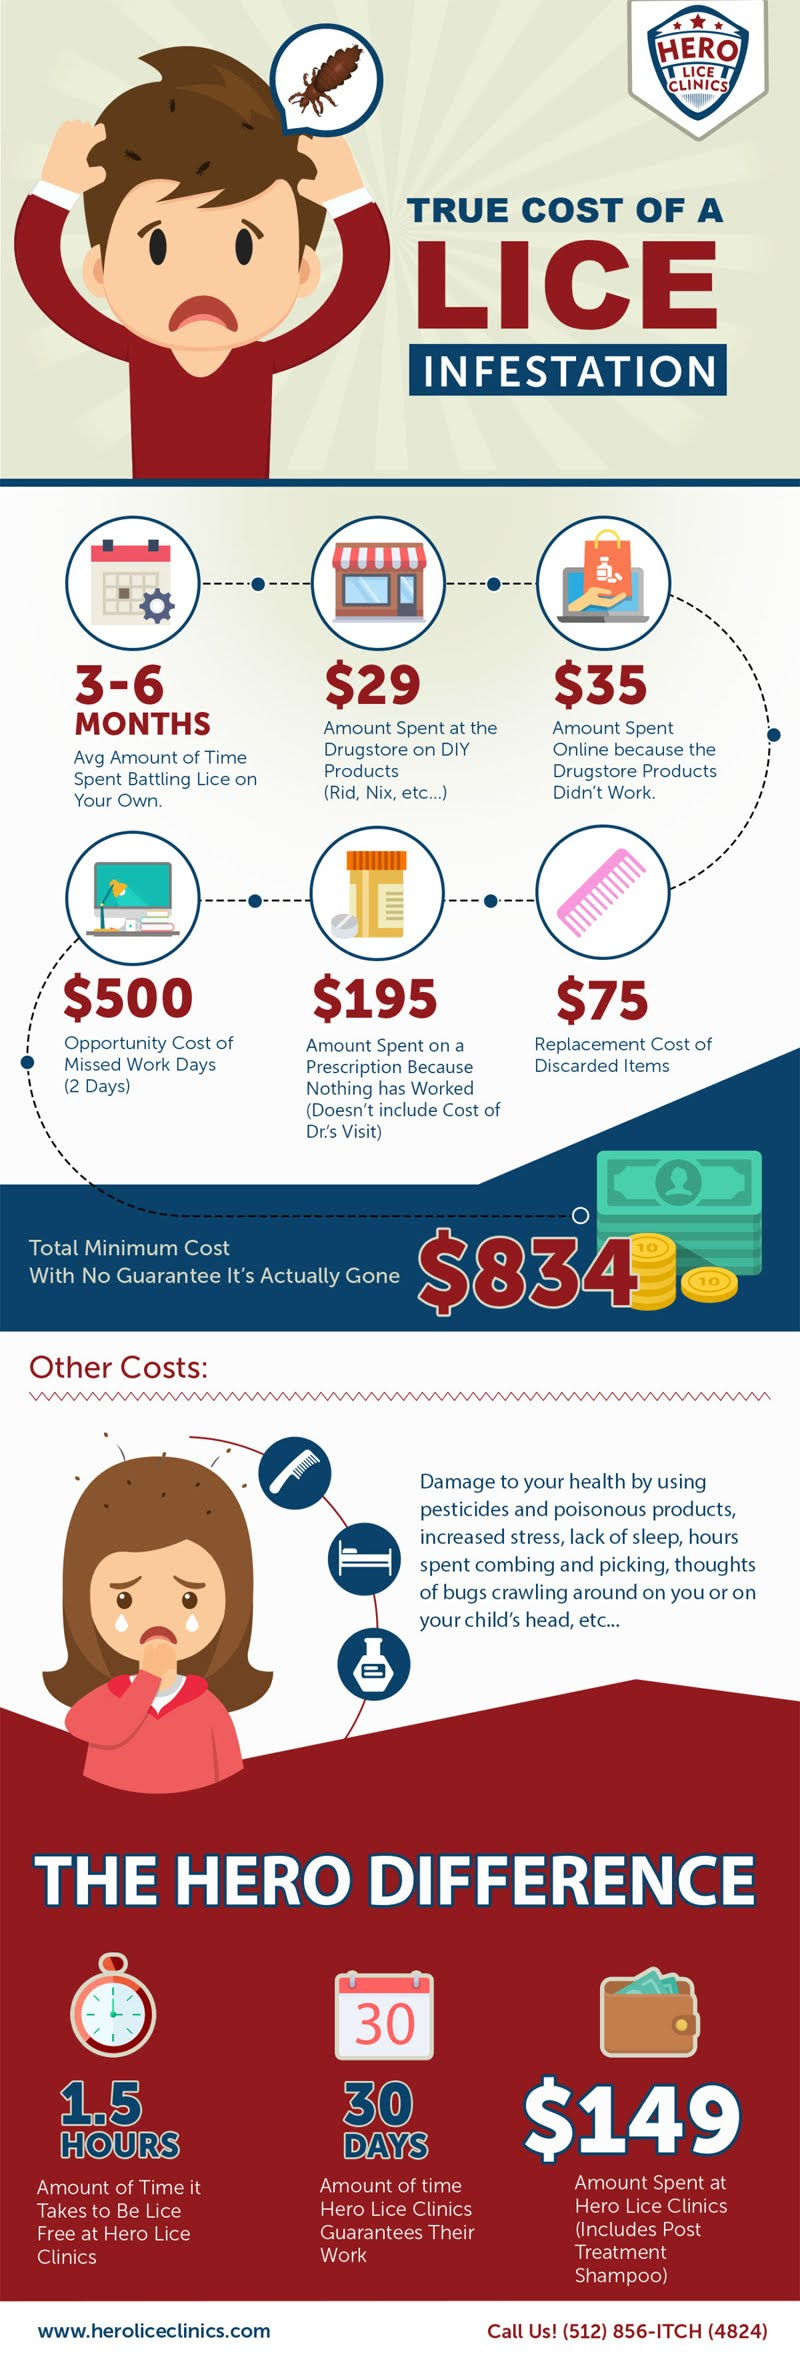 True Cost of Lice Infestation #infographic